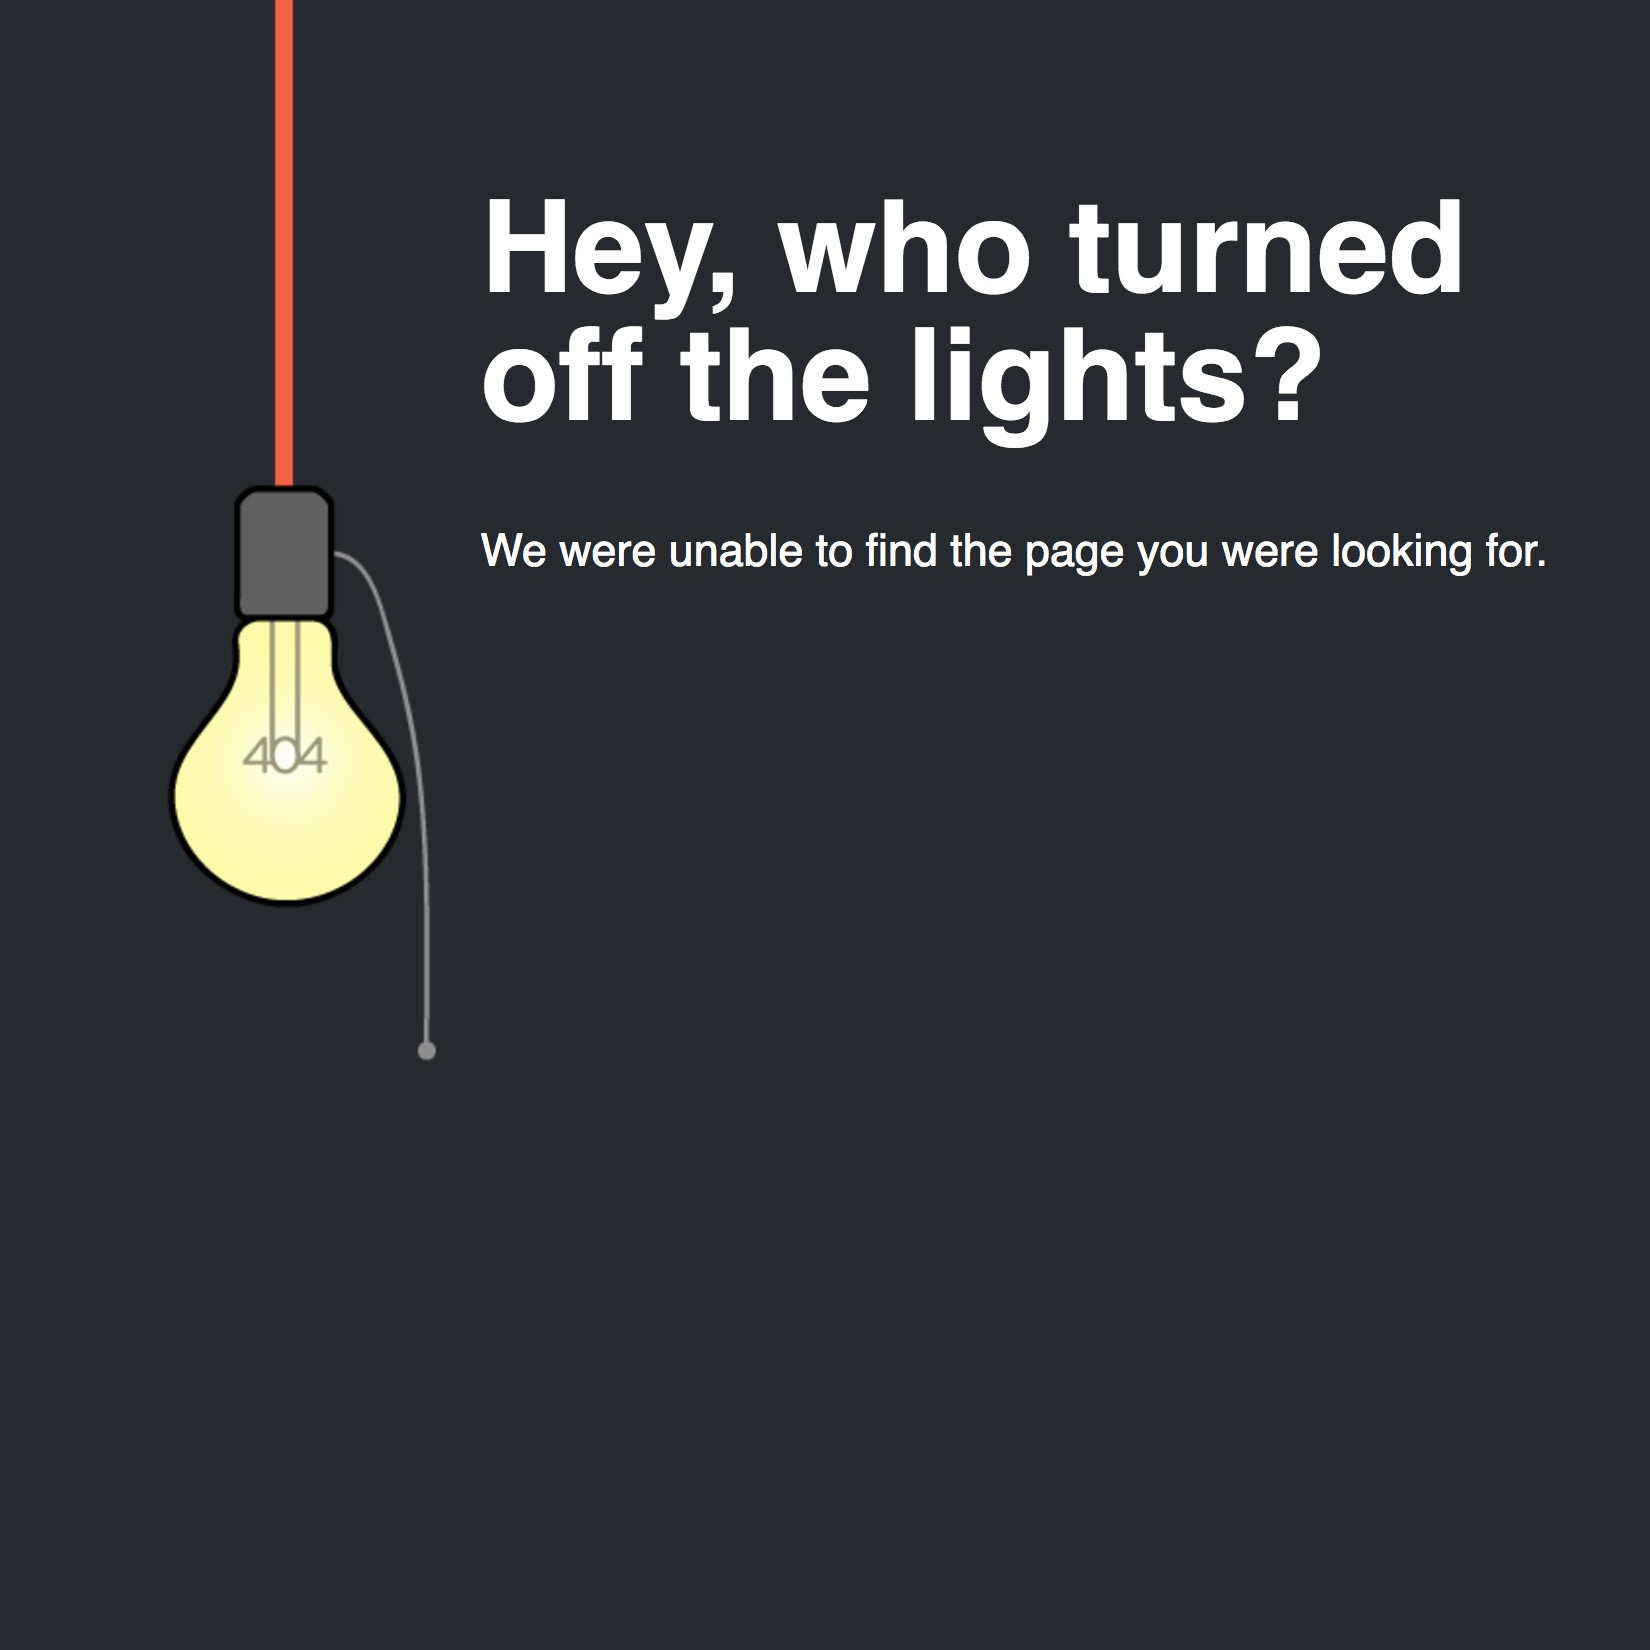 Error: 404 - Hey, who turned off the lights? We were unable to find the page you were looking for.